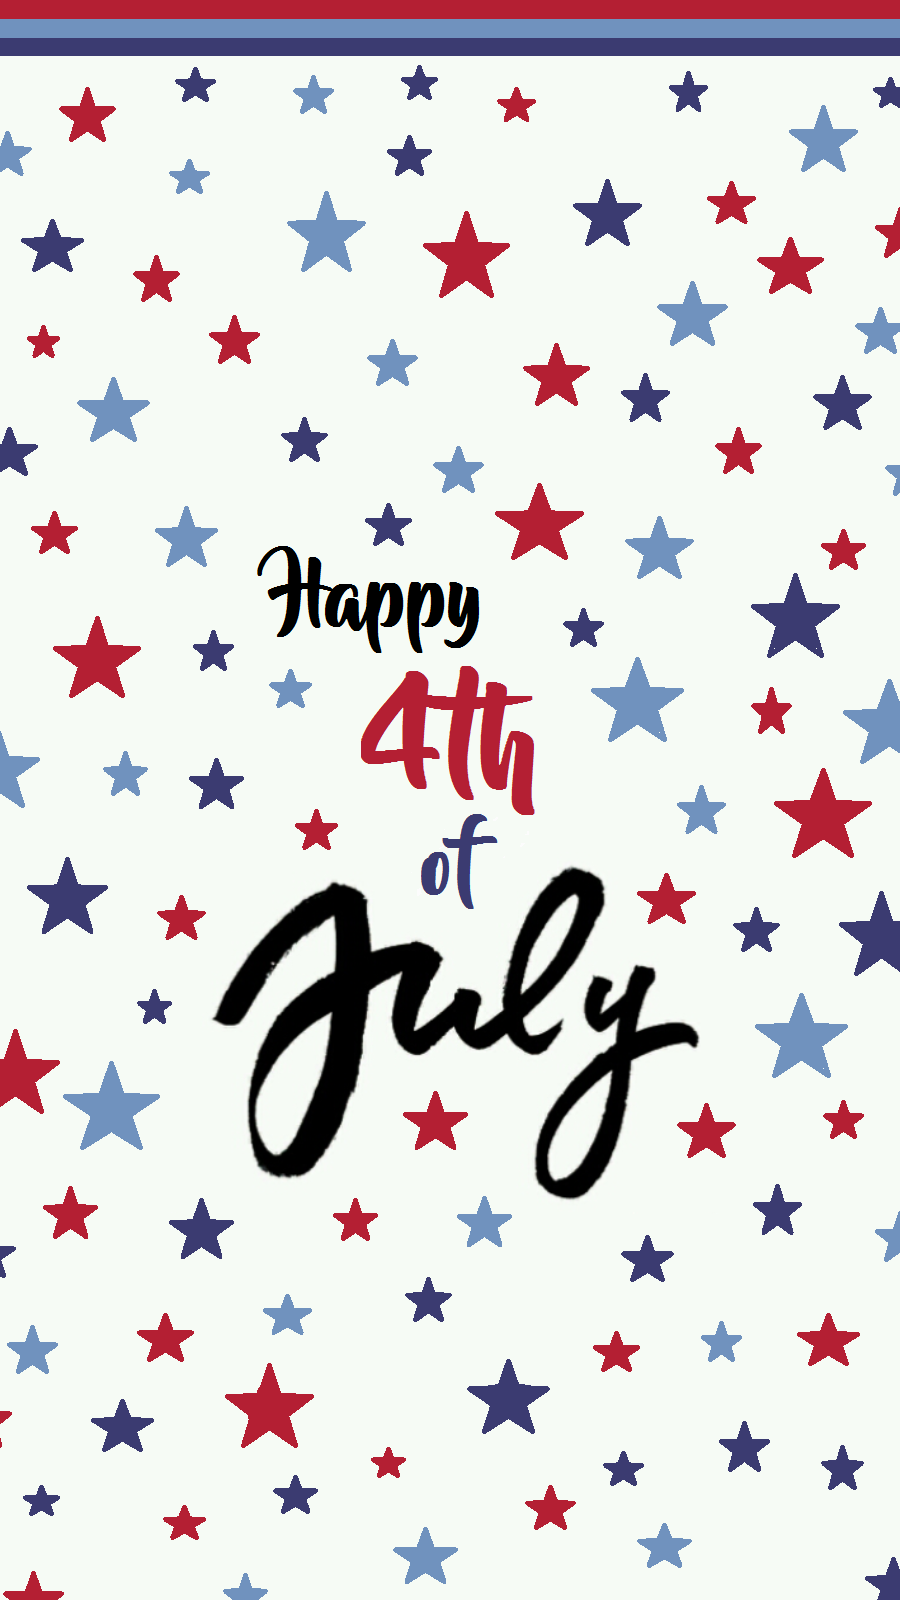 Pin By Lollikins On 4th Of July Wallpaper 4th Of July Wallpaper 4th Of July Images Patriotic Wallpaper